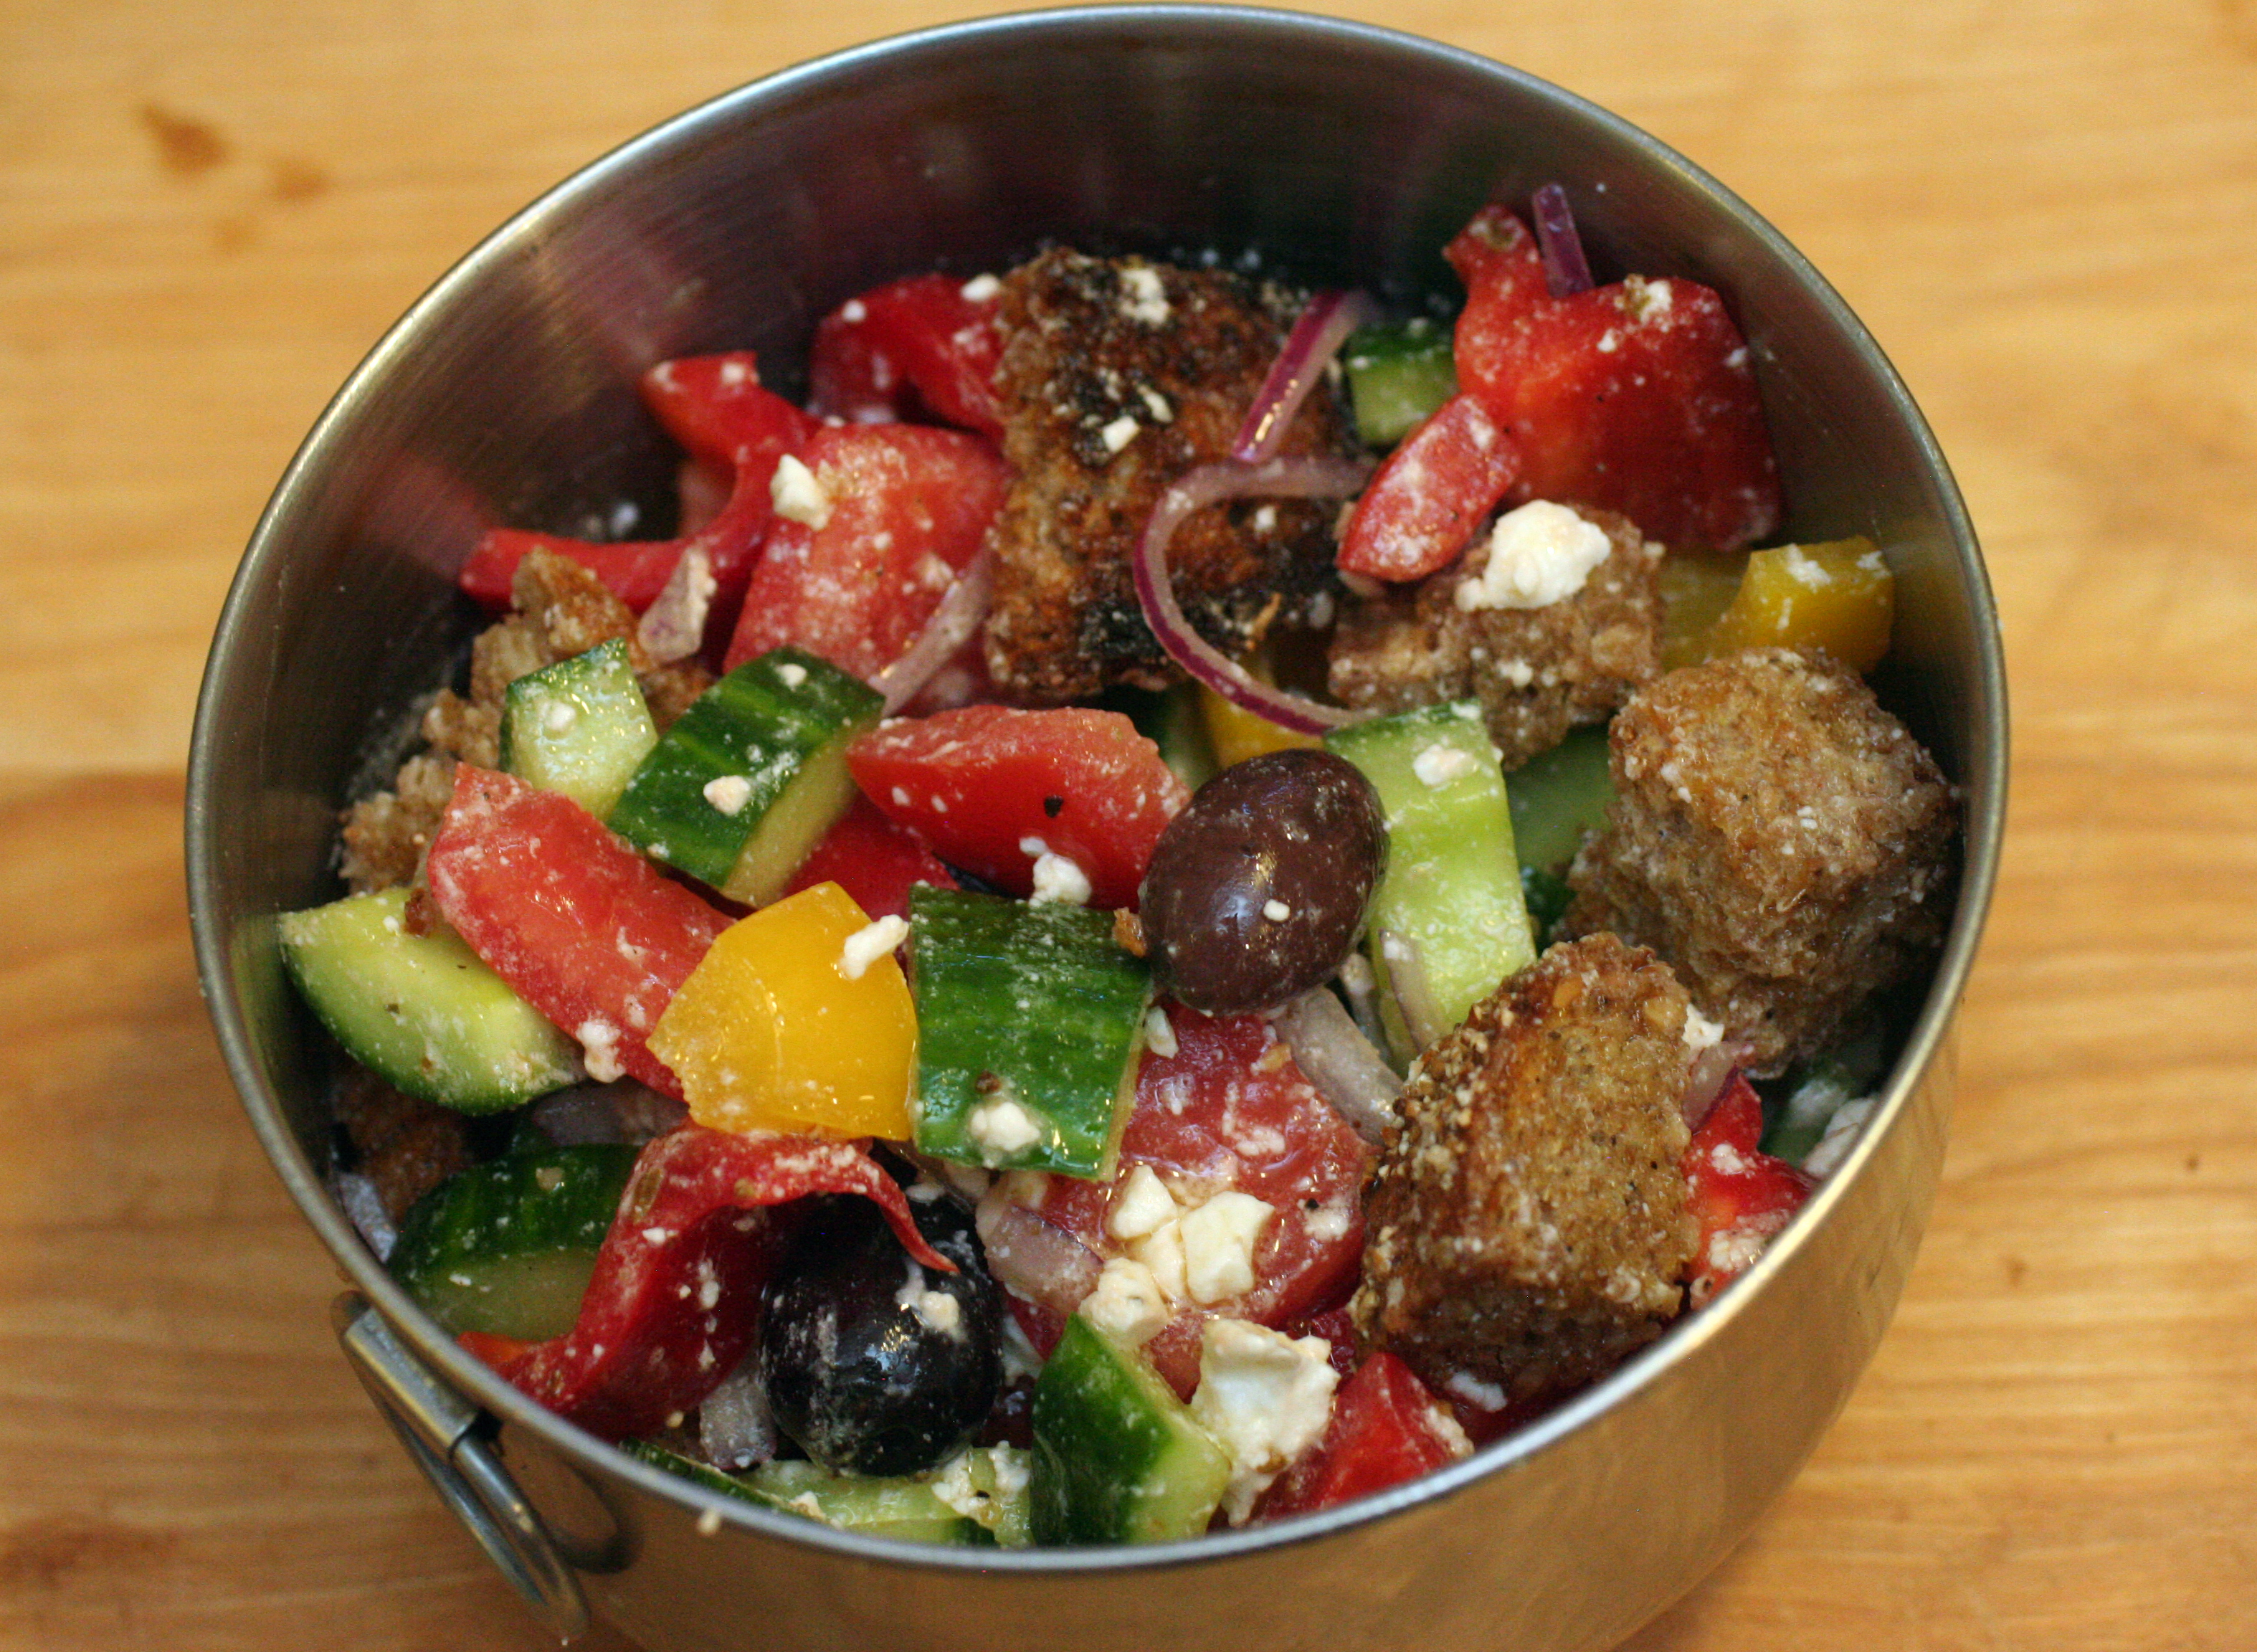 Greek Panzanella greek panzanella | snacko backo